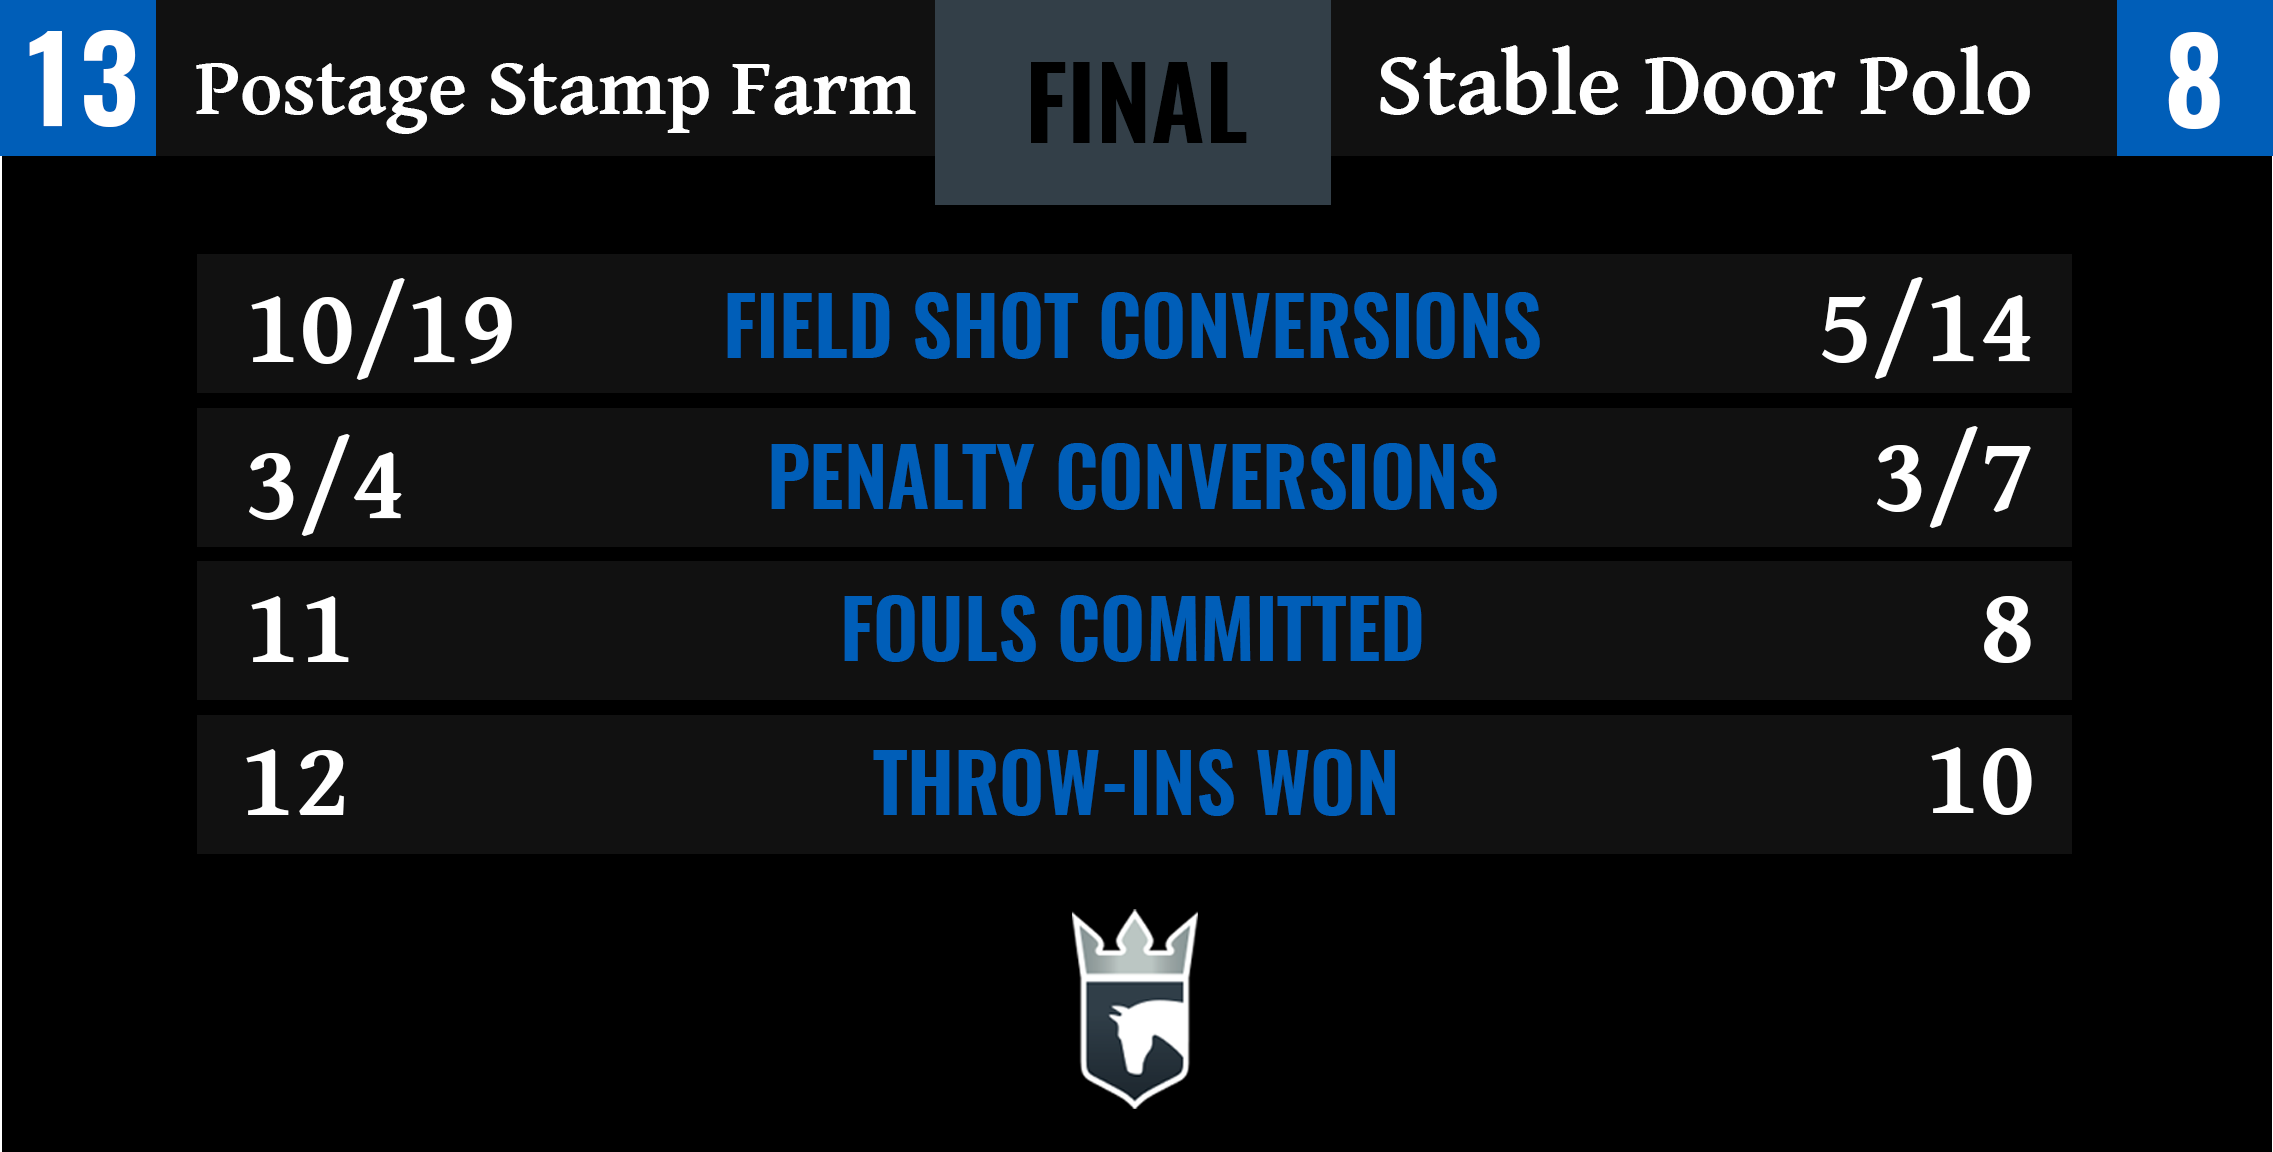 Postage Stamp Farm vs Stable Door Polo Final Stats-1